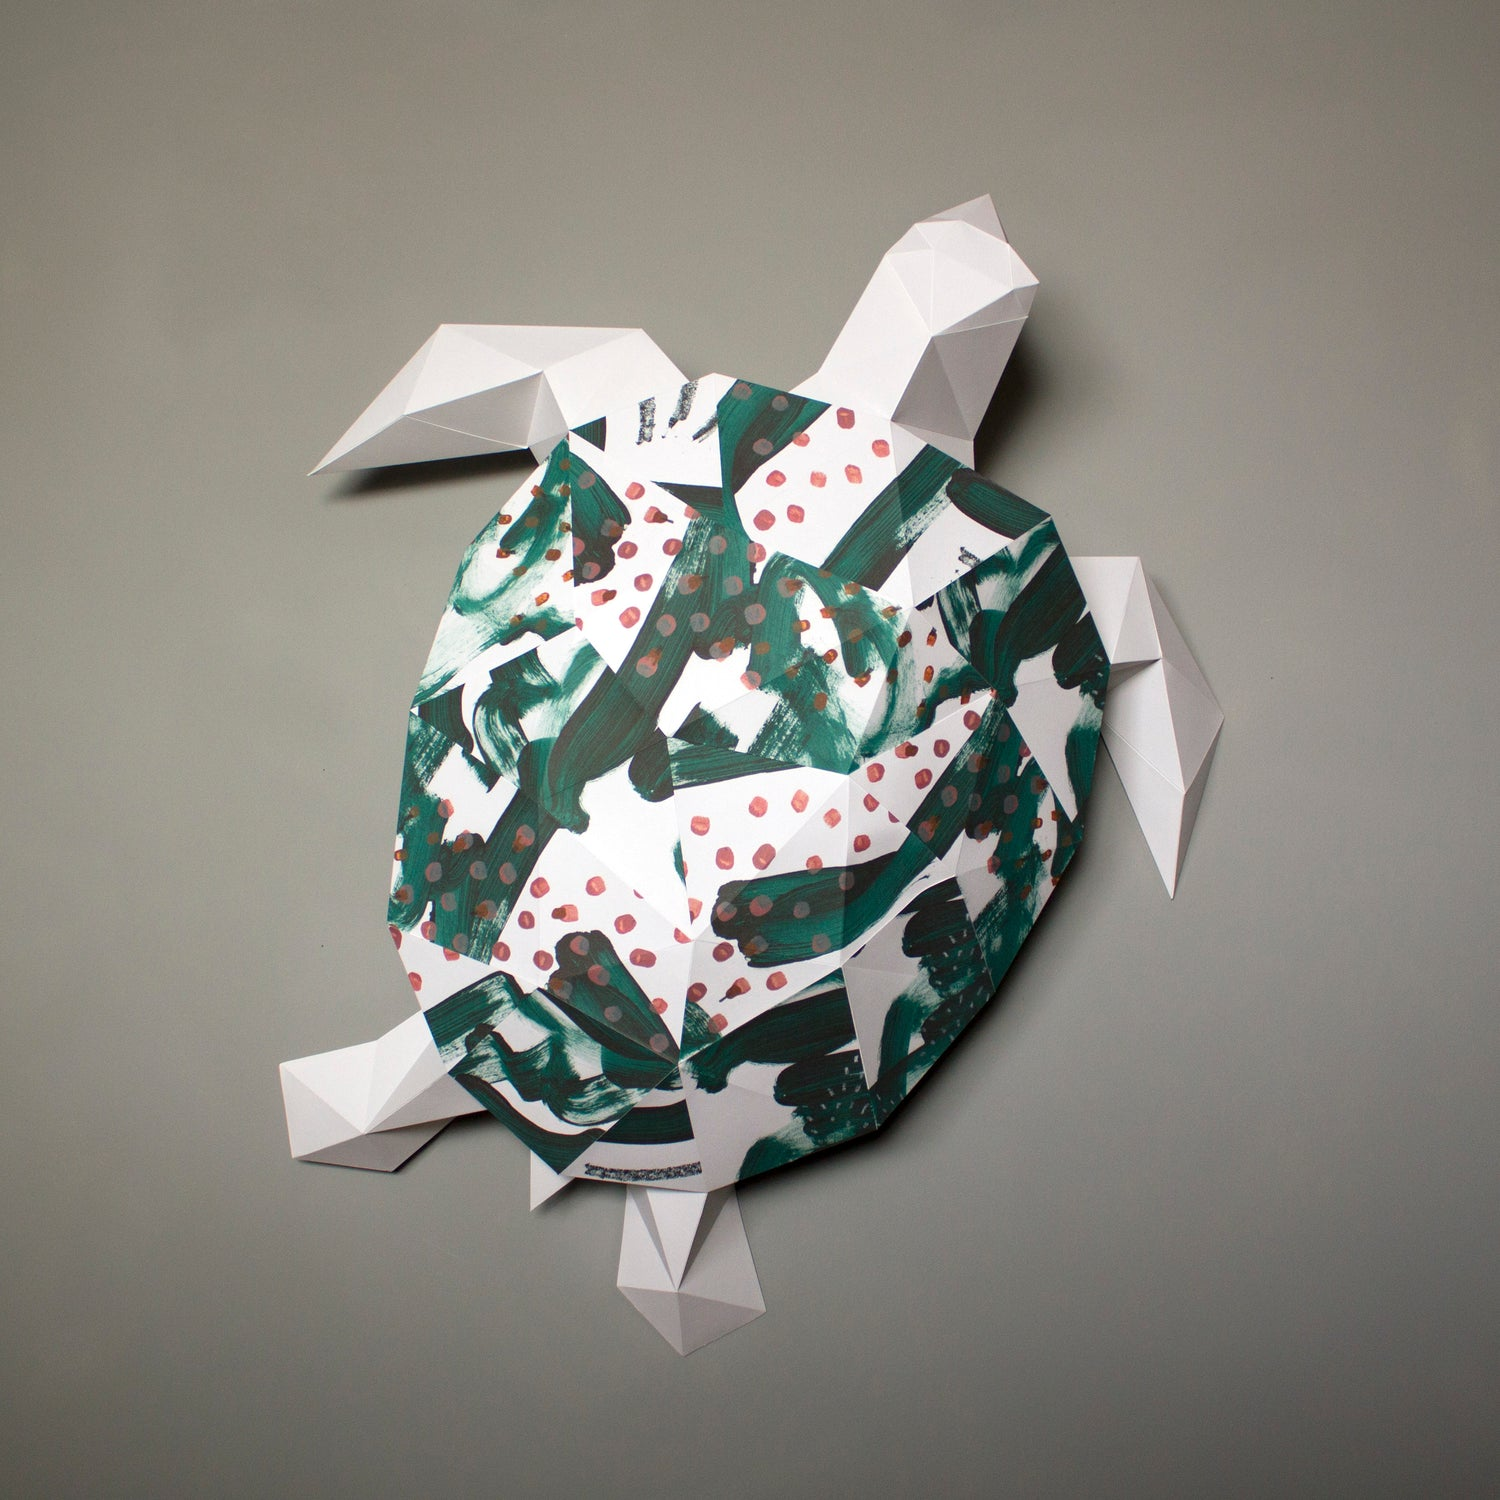 Turtle Papercraft Kit